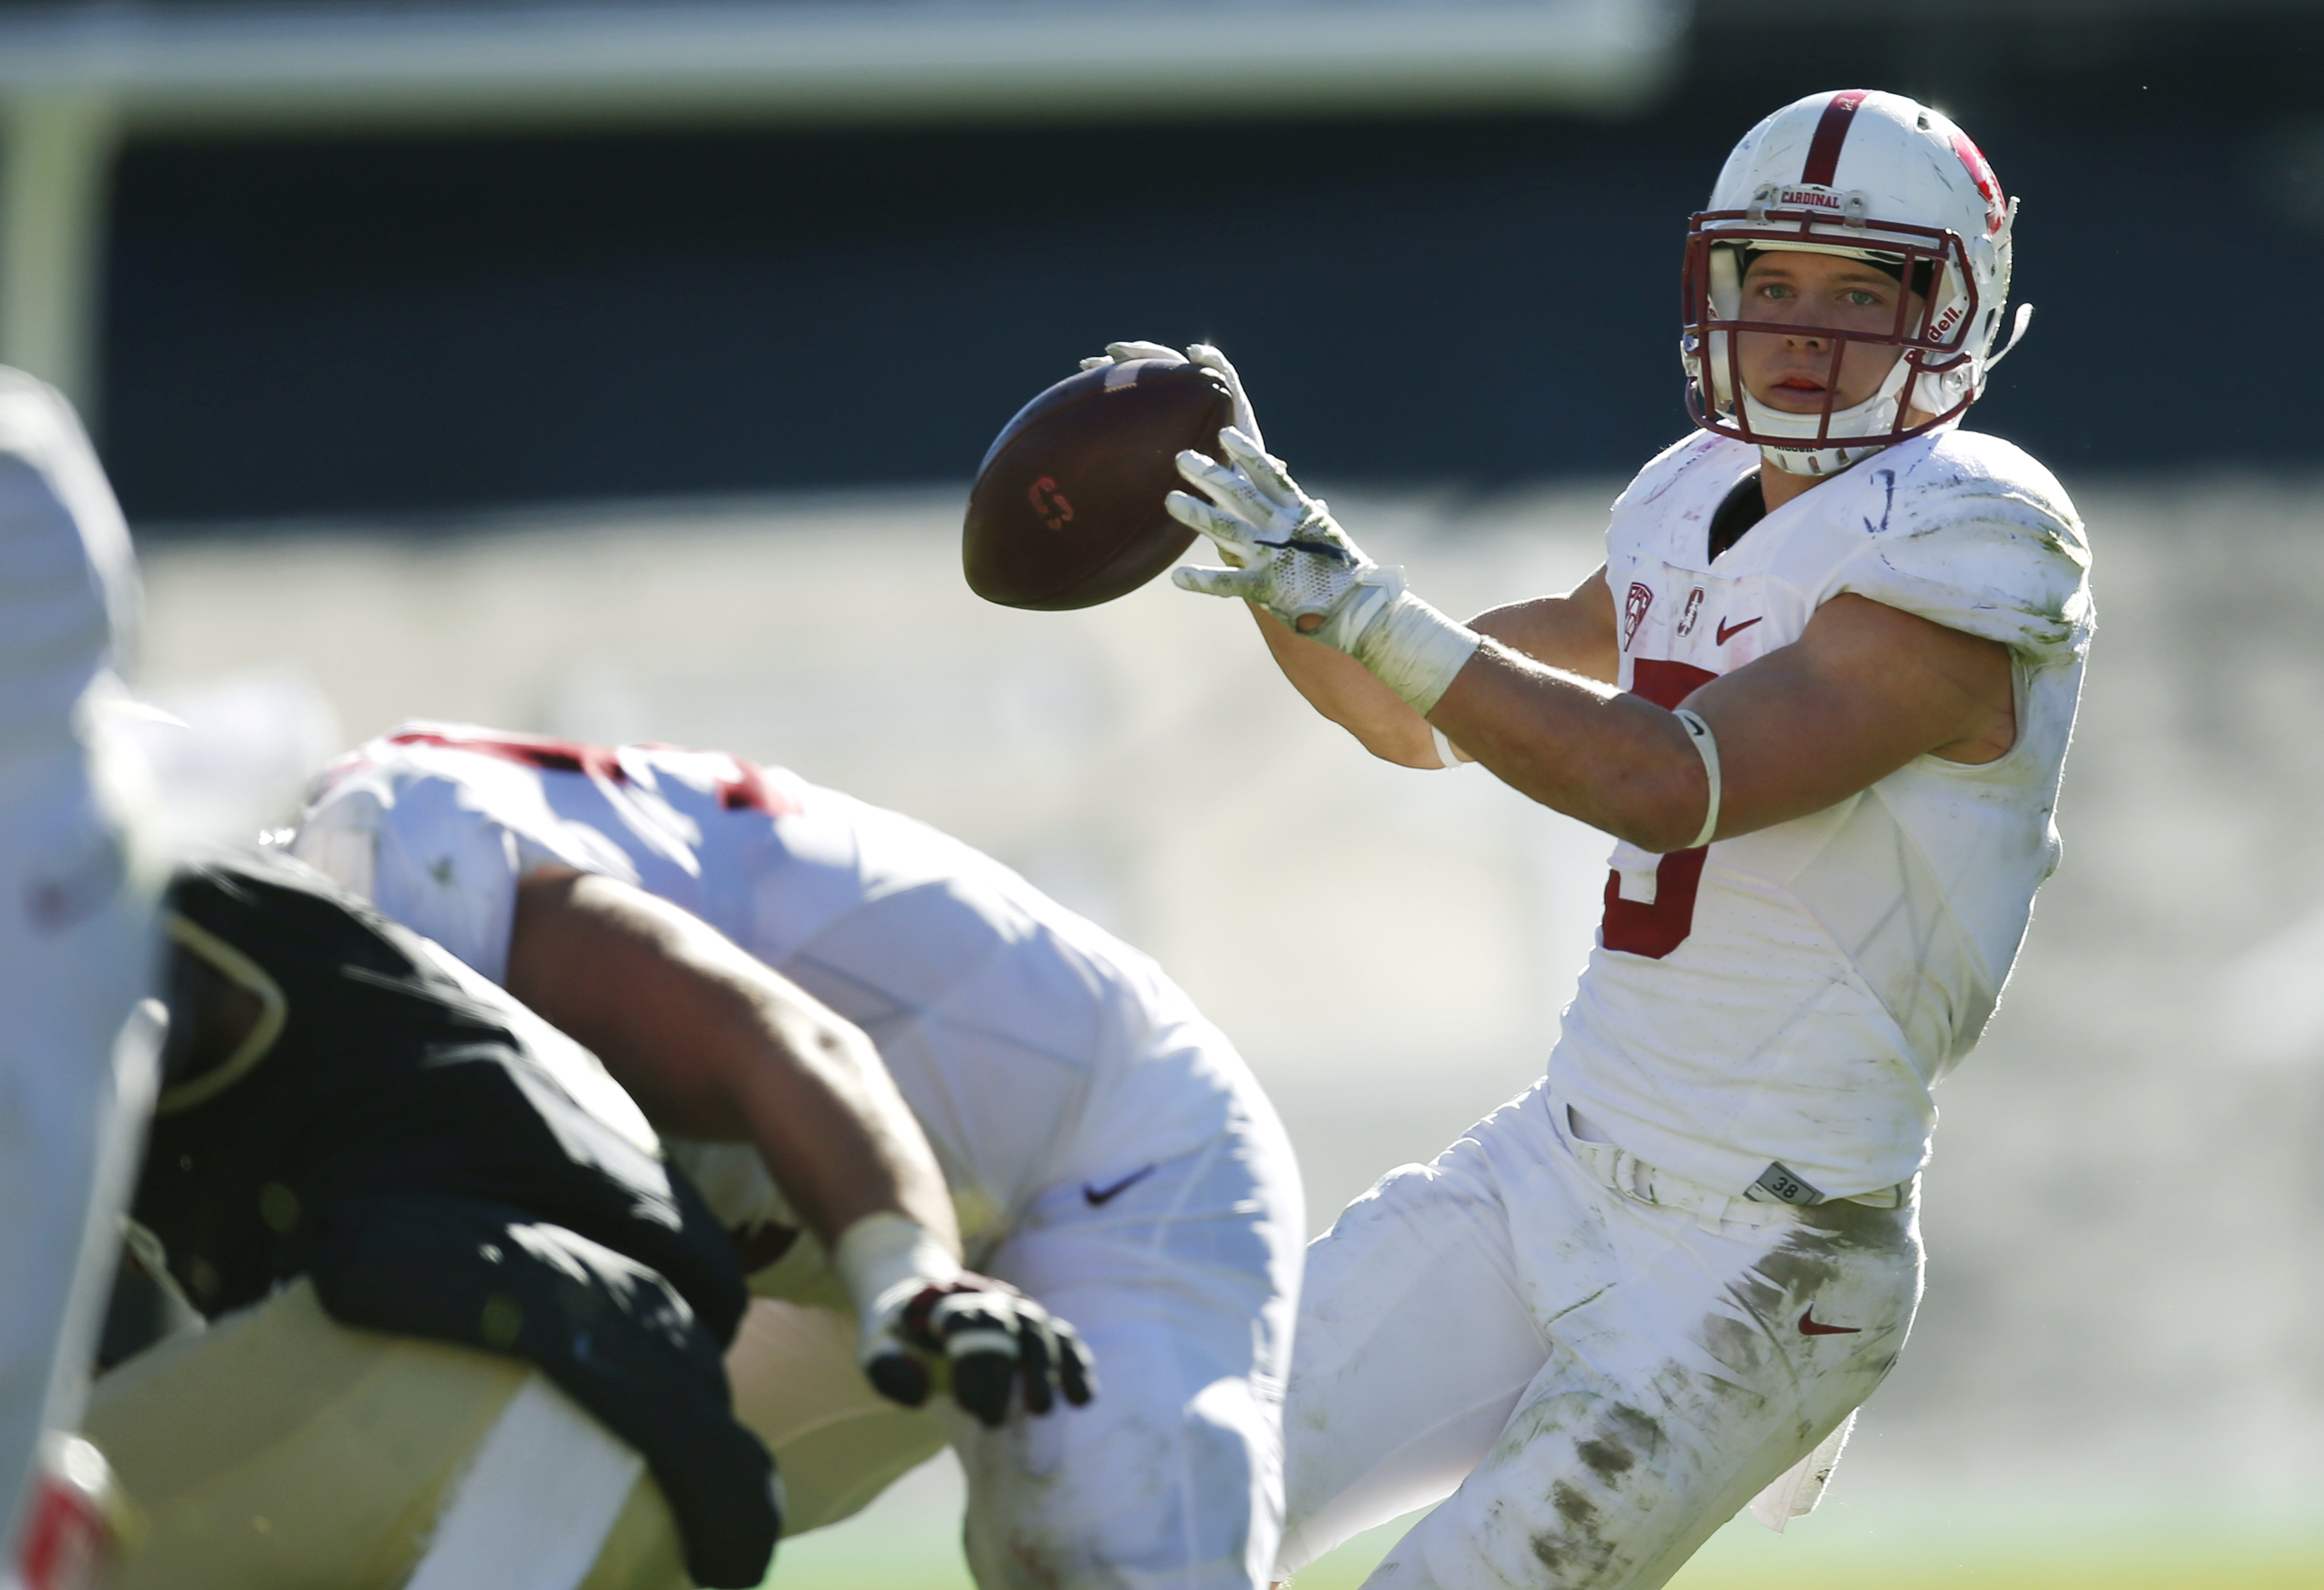 Stanford running back Christian McCaffrey, back, fades back to throw a pass for a touchdown against Colorado in the second half of an NCAA college football game Saturday, Nov. 7, 2015, in Boulder, Colo. Stanford won 42-10. (AP Photo/David Zalubowski)